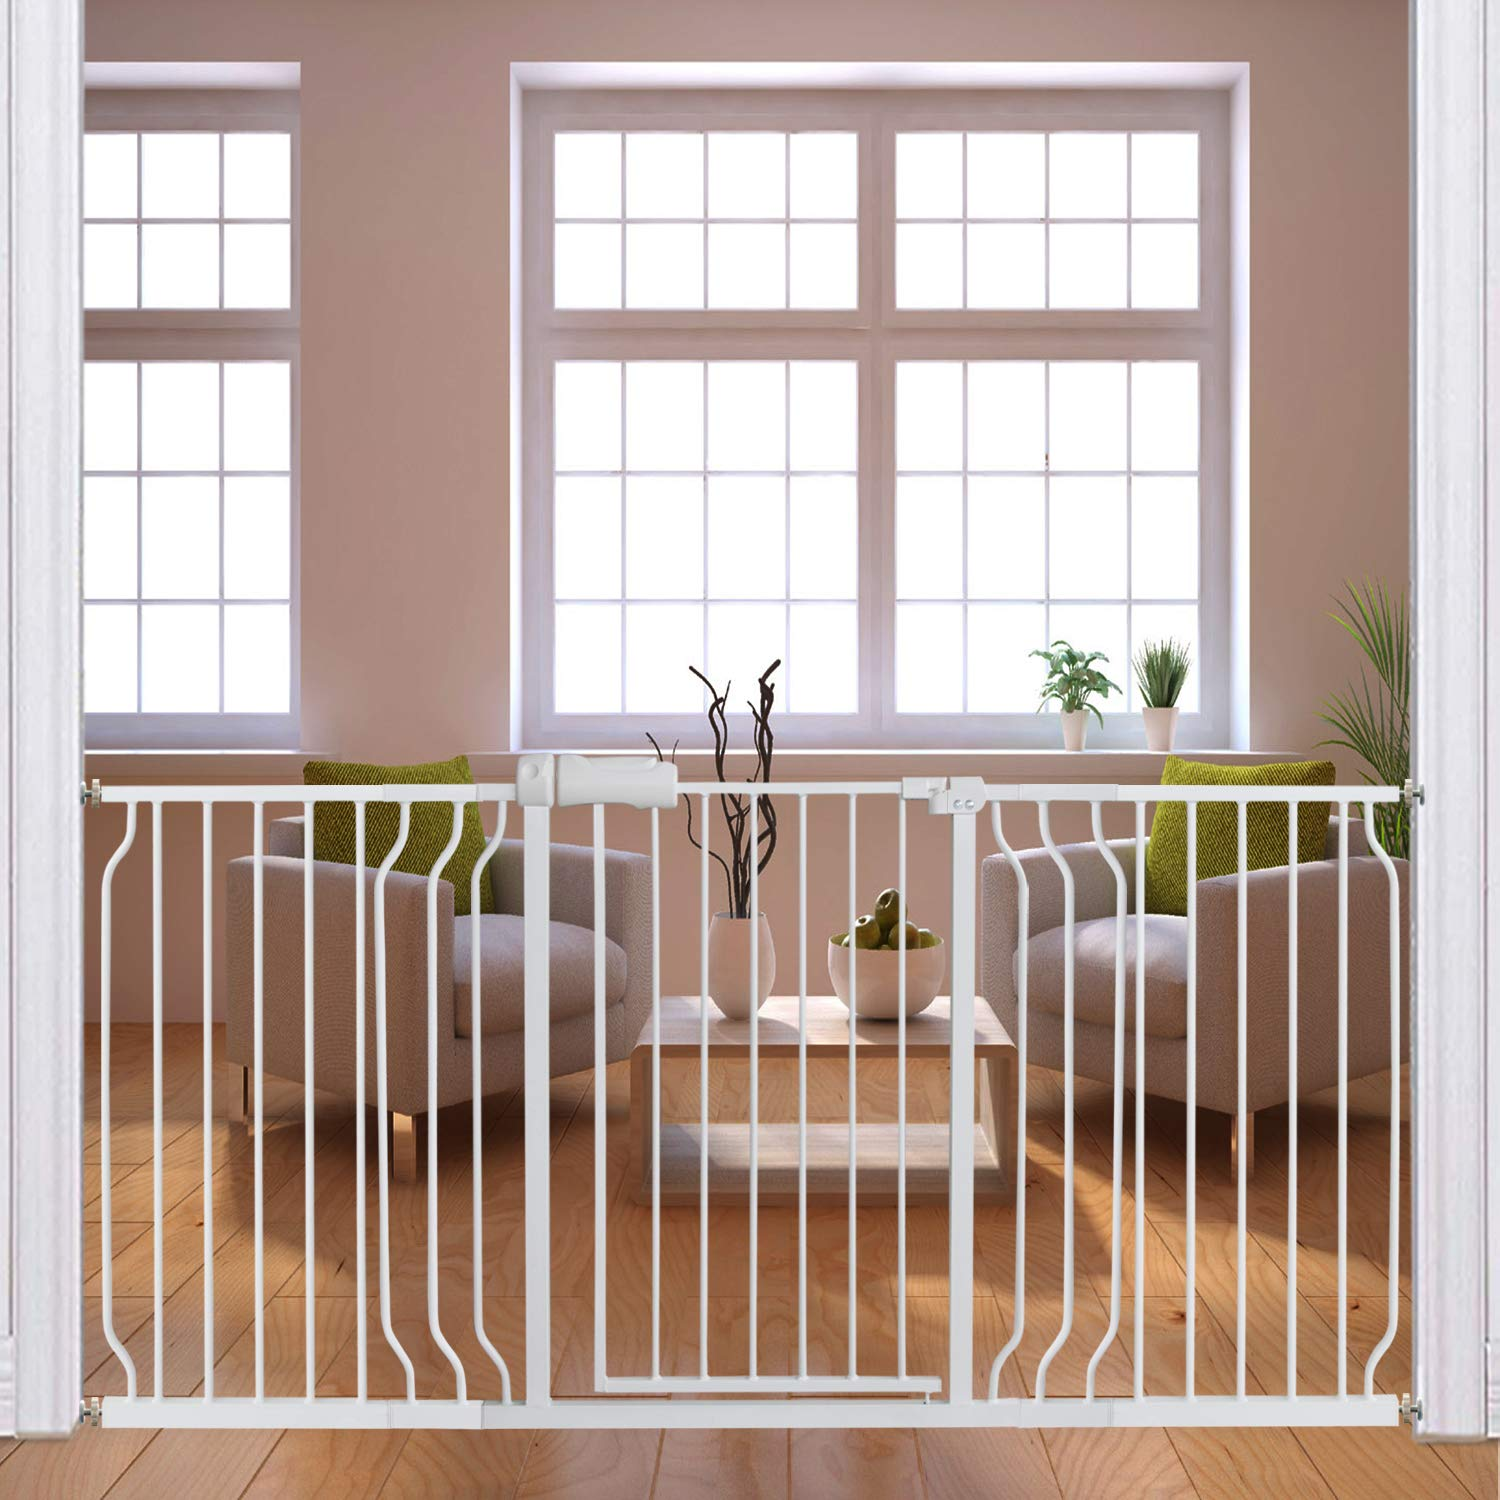 Fairy Baby Extra Wide Baby Gates 67 71 5 Inch Auto Close Child Safety Gates For Stairway Banister Doorways Hallway Indoor Safety Child Gates For Kids Or Pets Baby